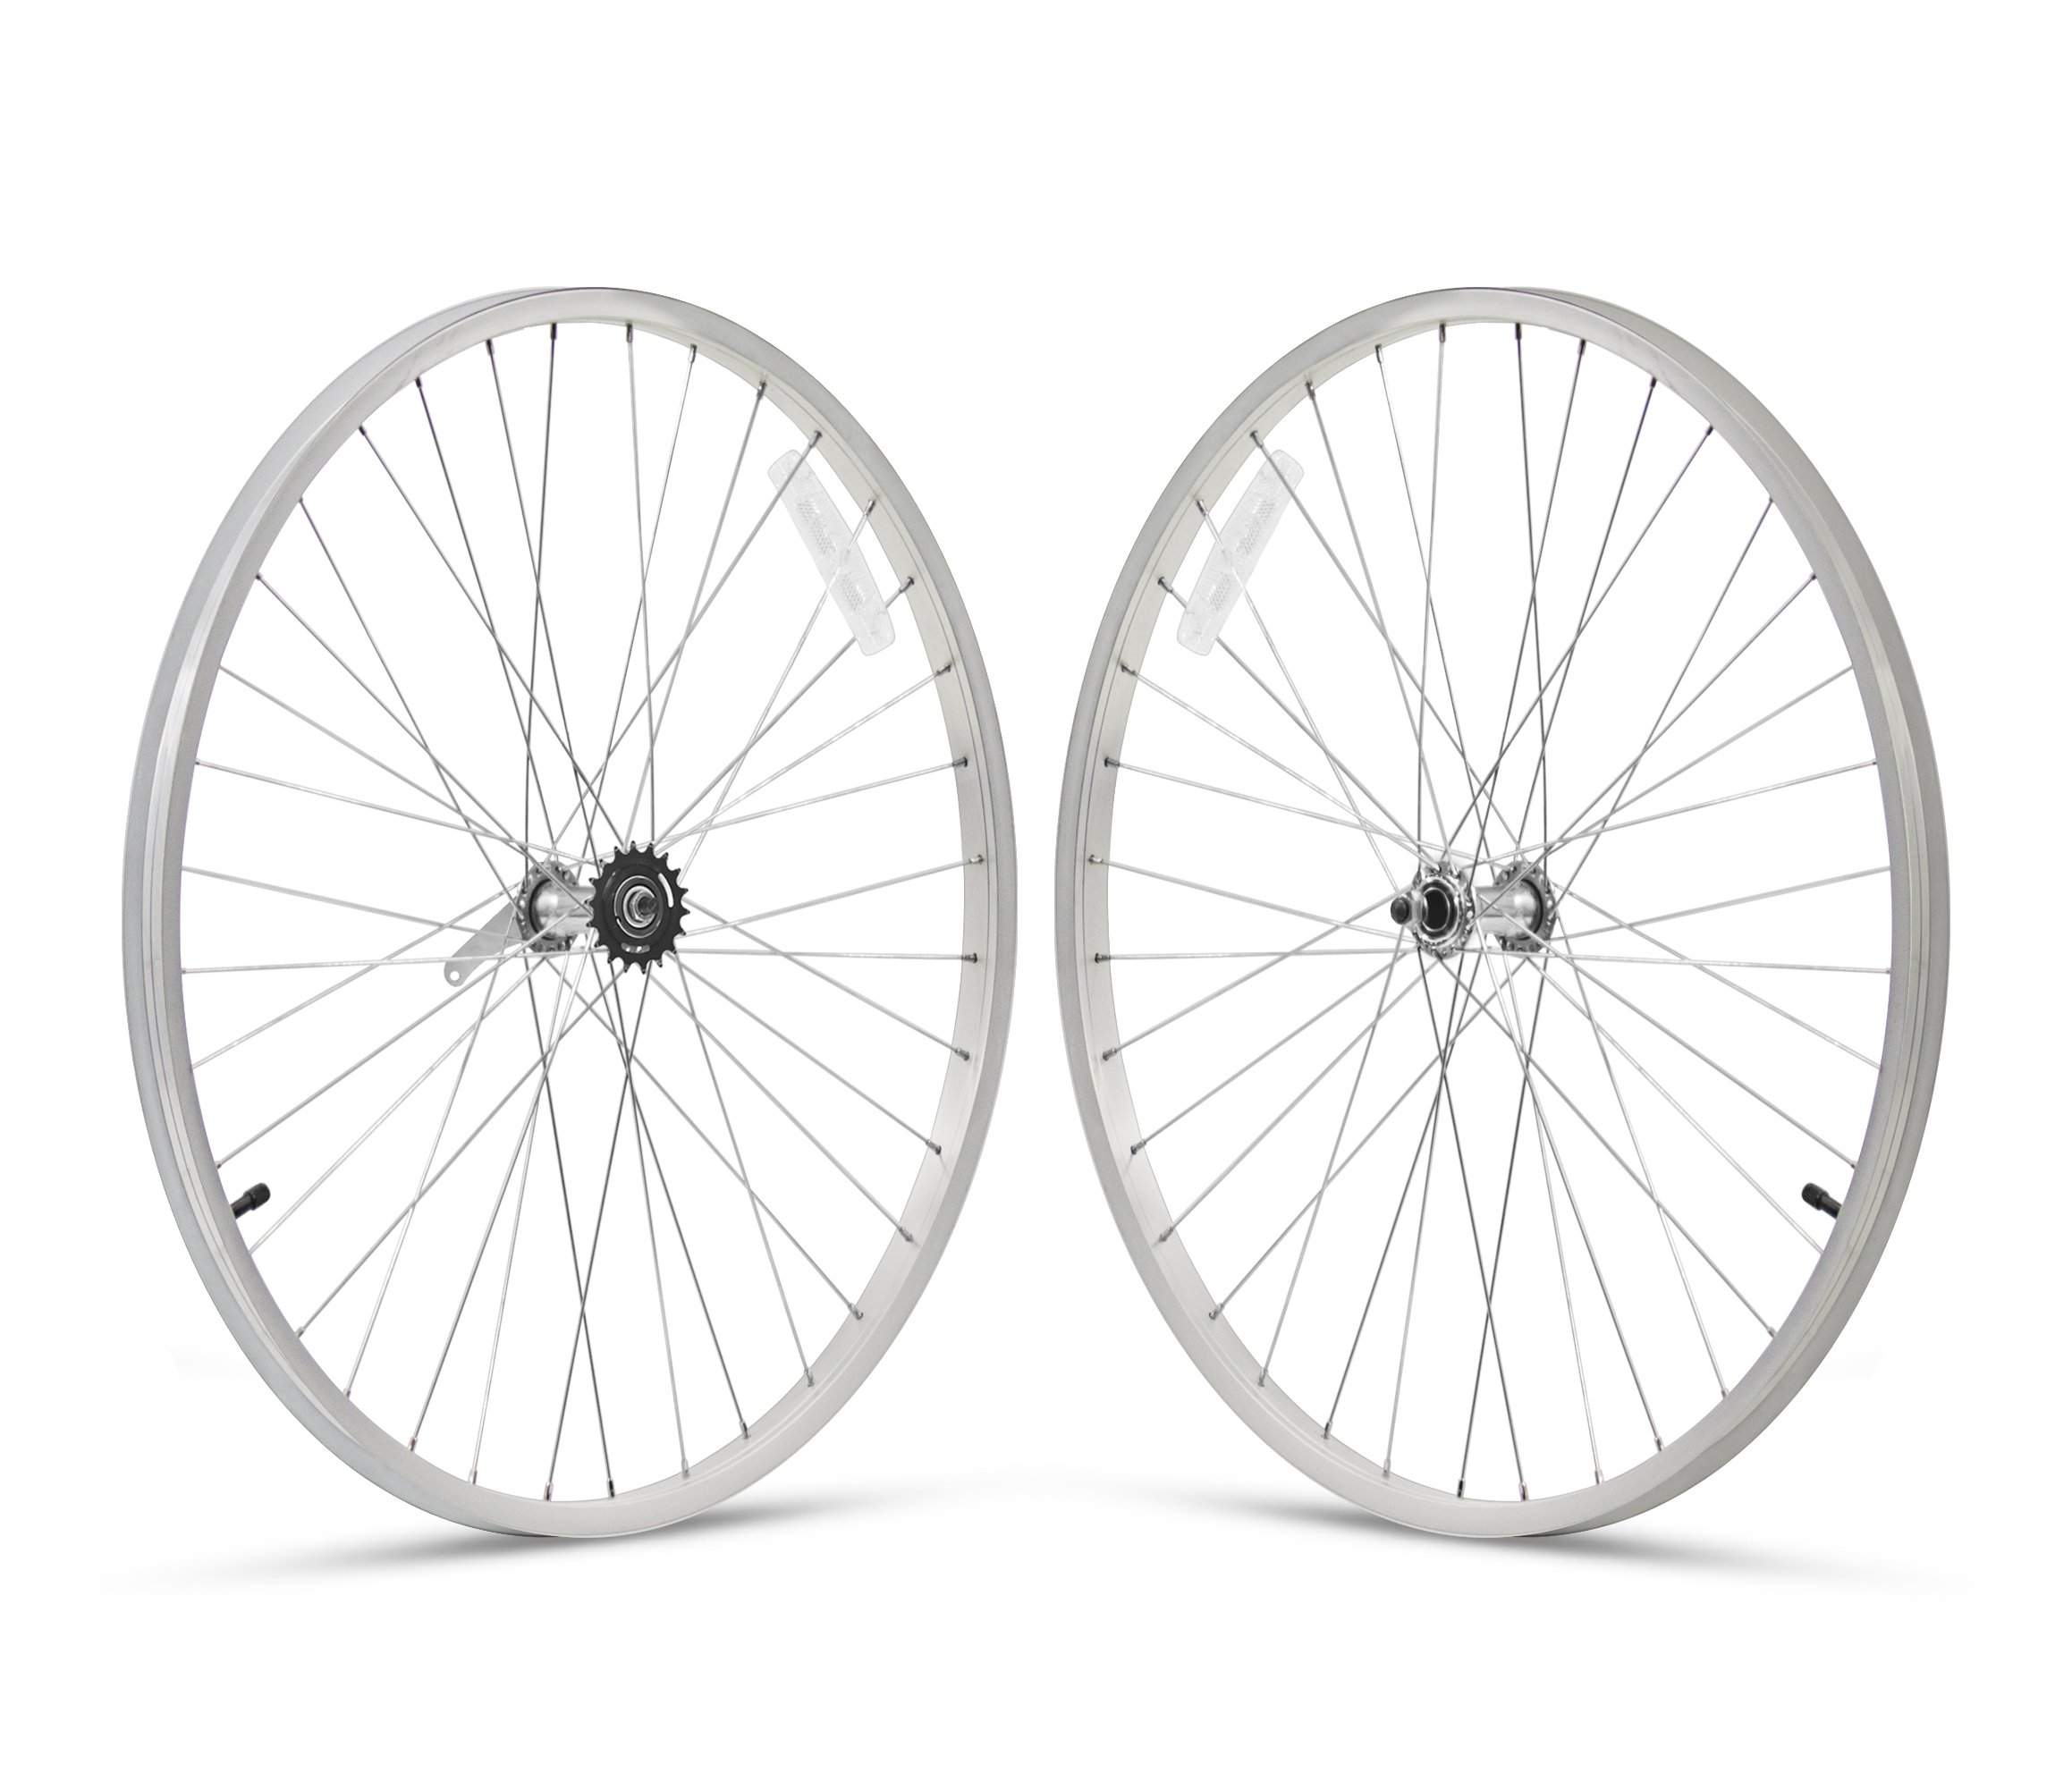 Firmstrong 1-Speed Beach Cruiser Bicycle Wheelset, Front/Rear, Silver, 24''